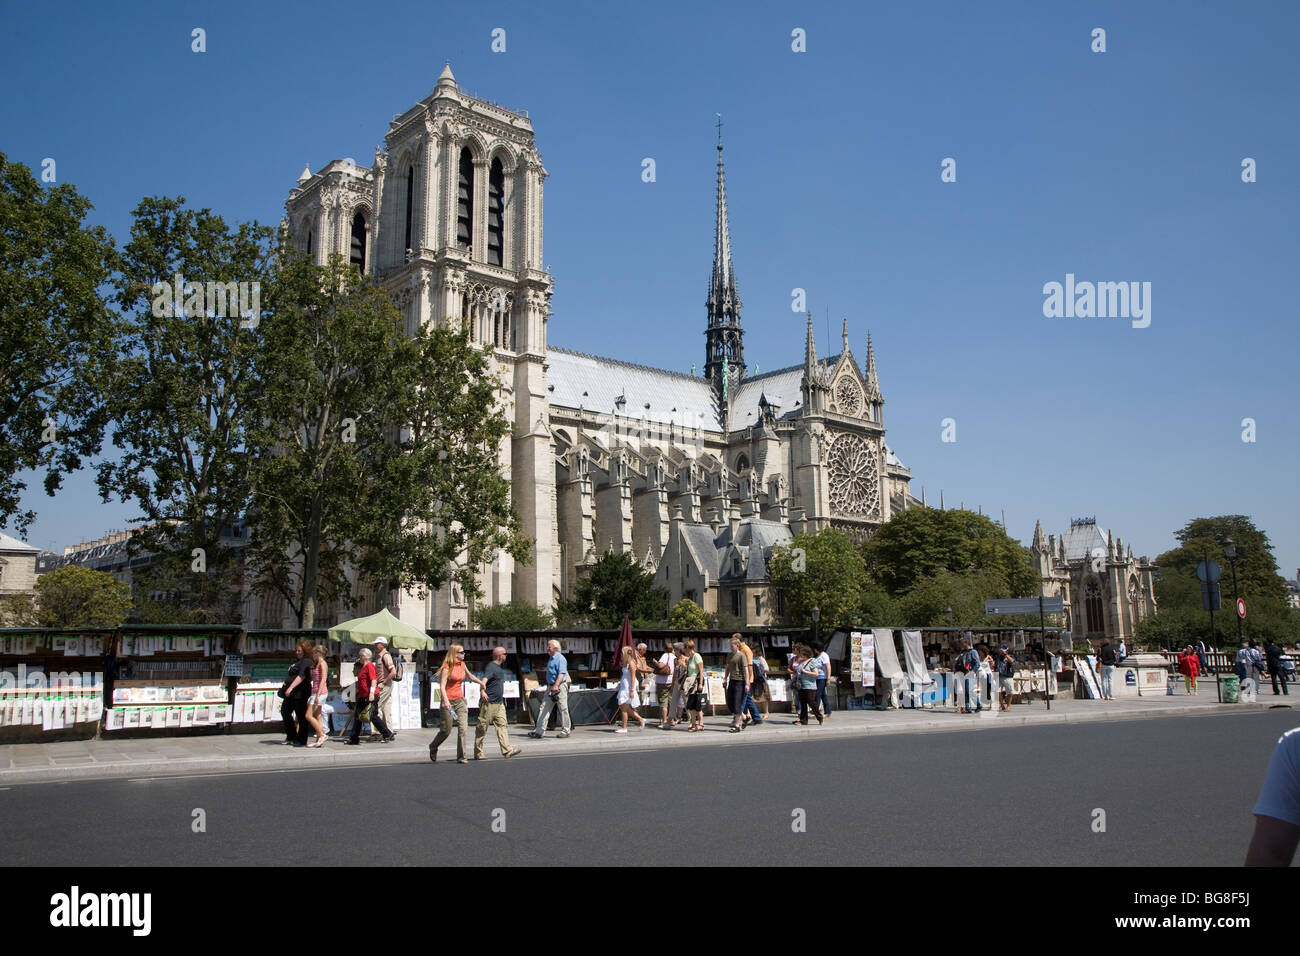 Tree lined street with tourists and Cathedral in background - Stock Image